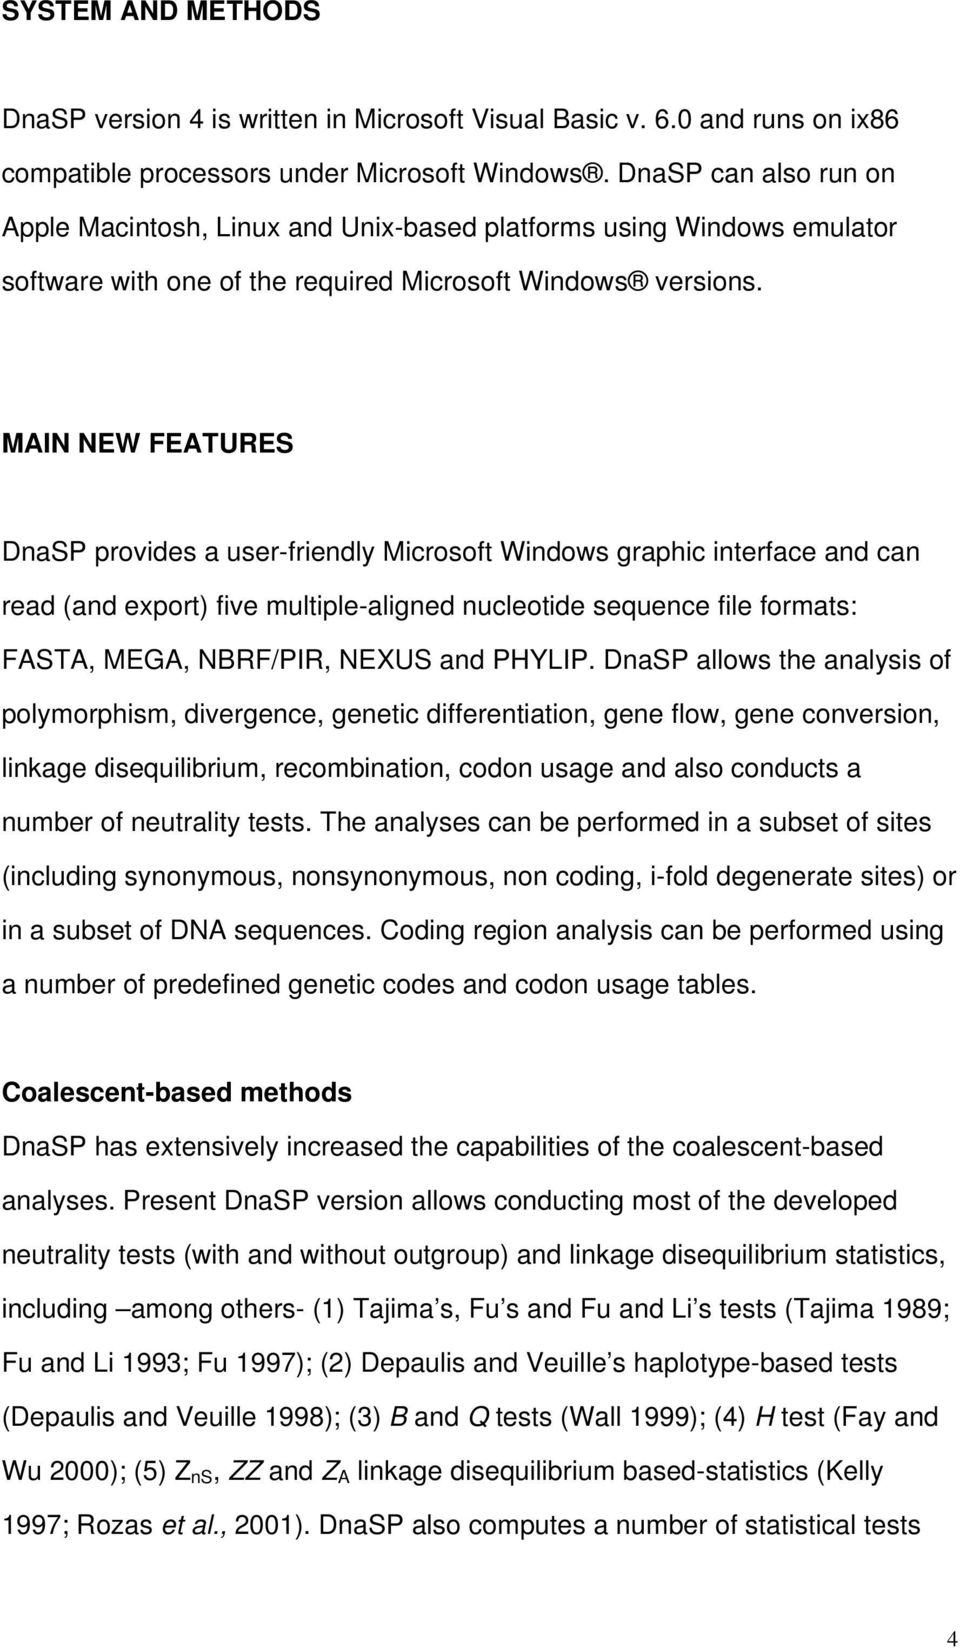 MAIN NEW FEATURES DnaSP provides a user-friendly Microsoft Windows graphic interface and can read (and export) five multiple-aligned nucleotide sequence file formats: FASTA, MEGA, NBRF/PIR, NEXUS and